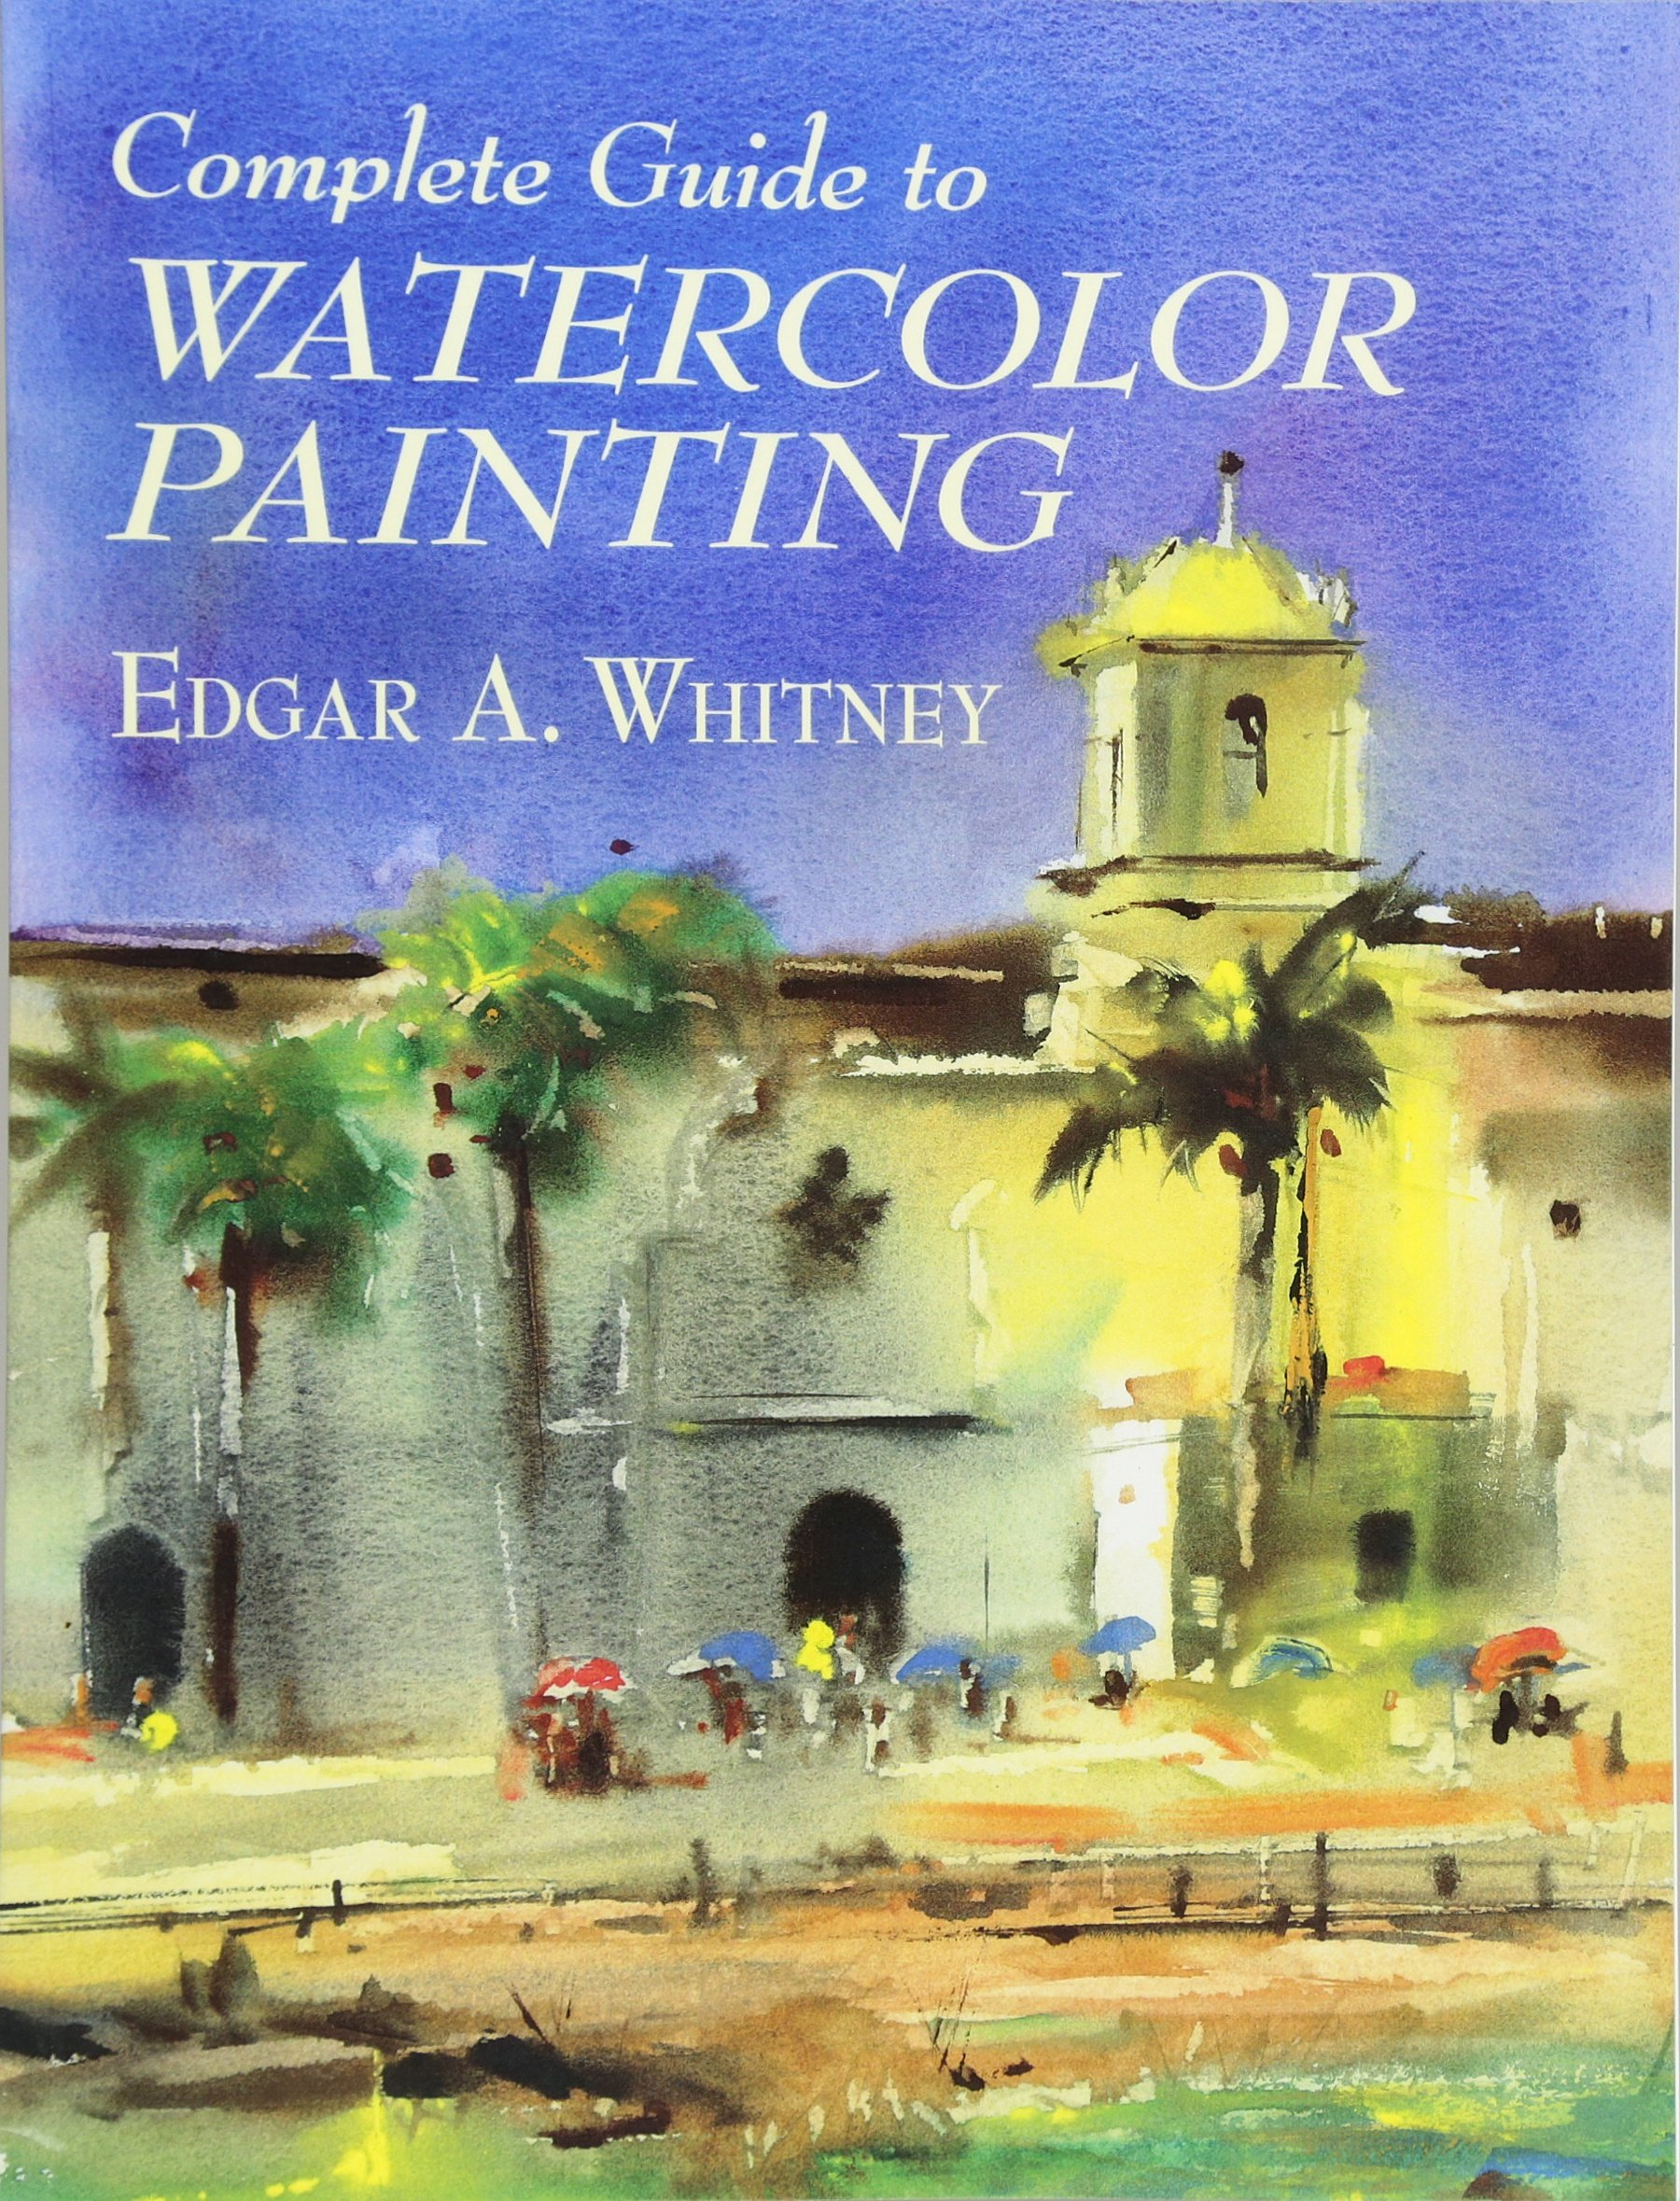 Watercolor artist magazine customer service - Complete Guide To Watercolor Painting Dover Art Instruction Edgar A Whitney 9780486417424 Amazon Com Books